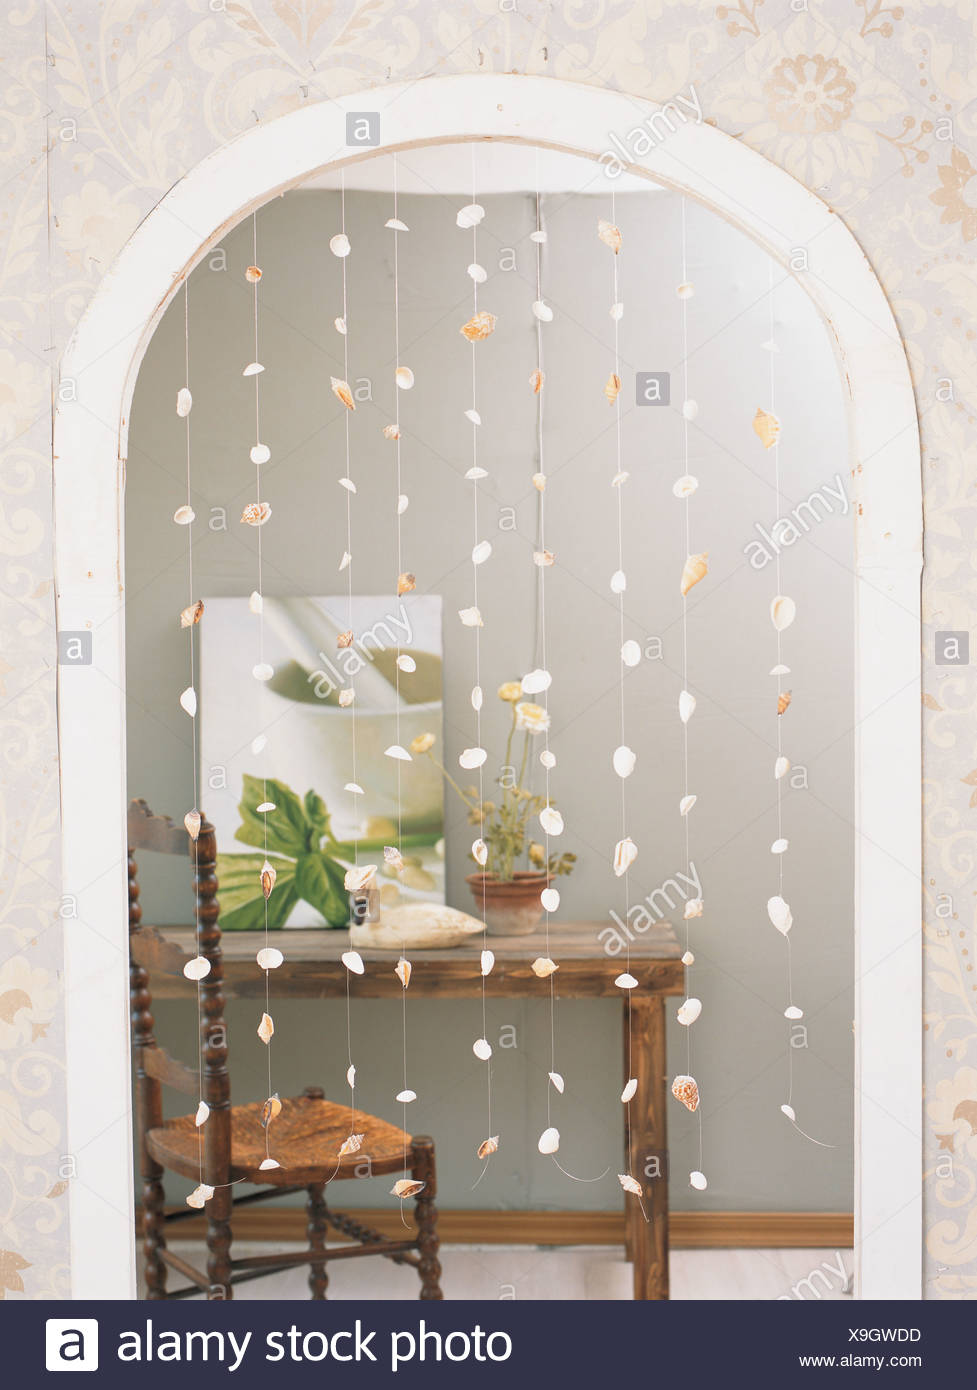 The interior decoration article - Stock Image